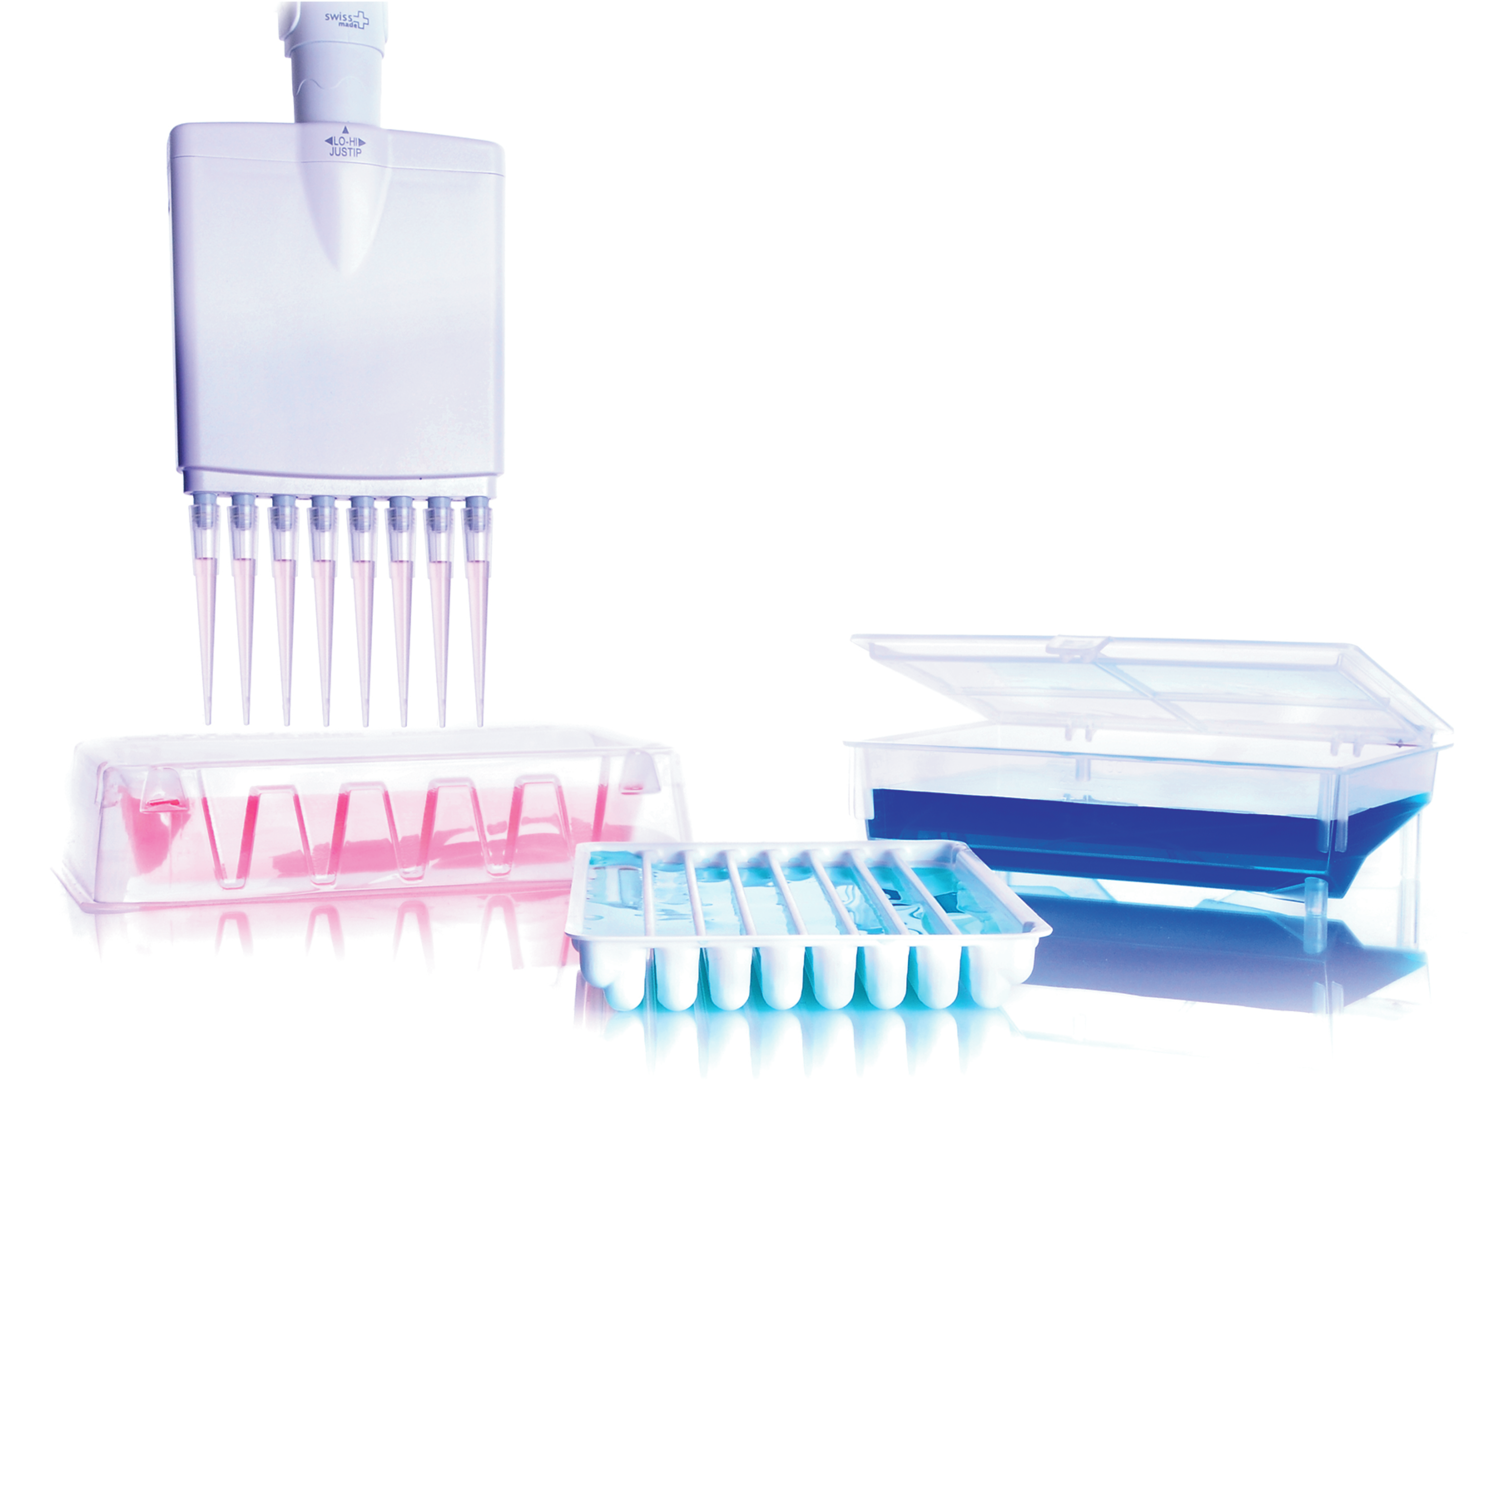 SOCOREX® All Purpose Reagent Reservoirs, PS, Sterile 12-Channel Reservoirs